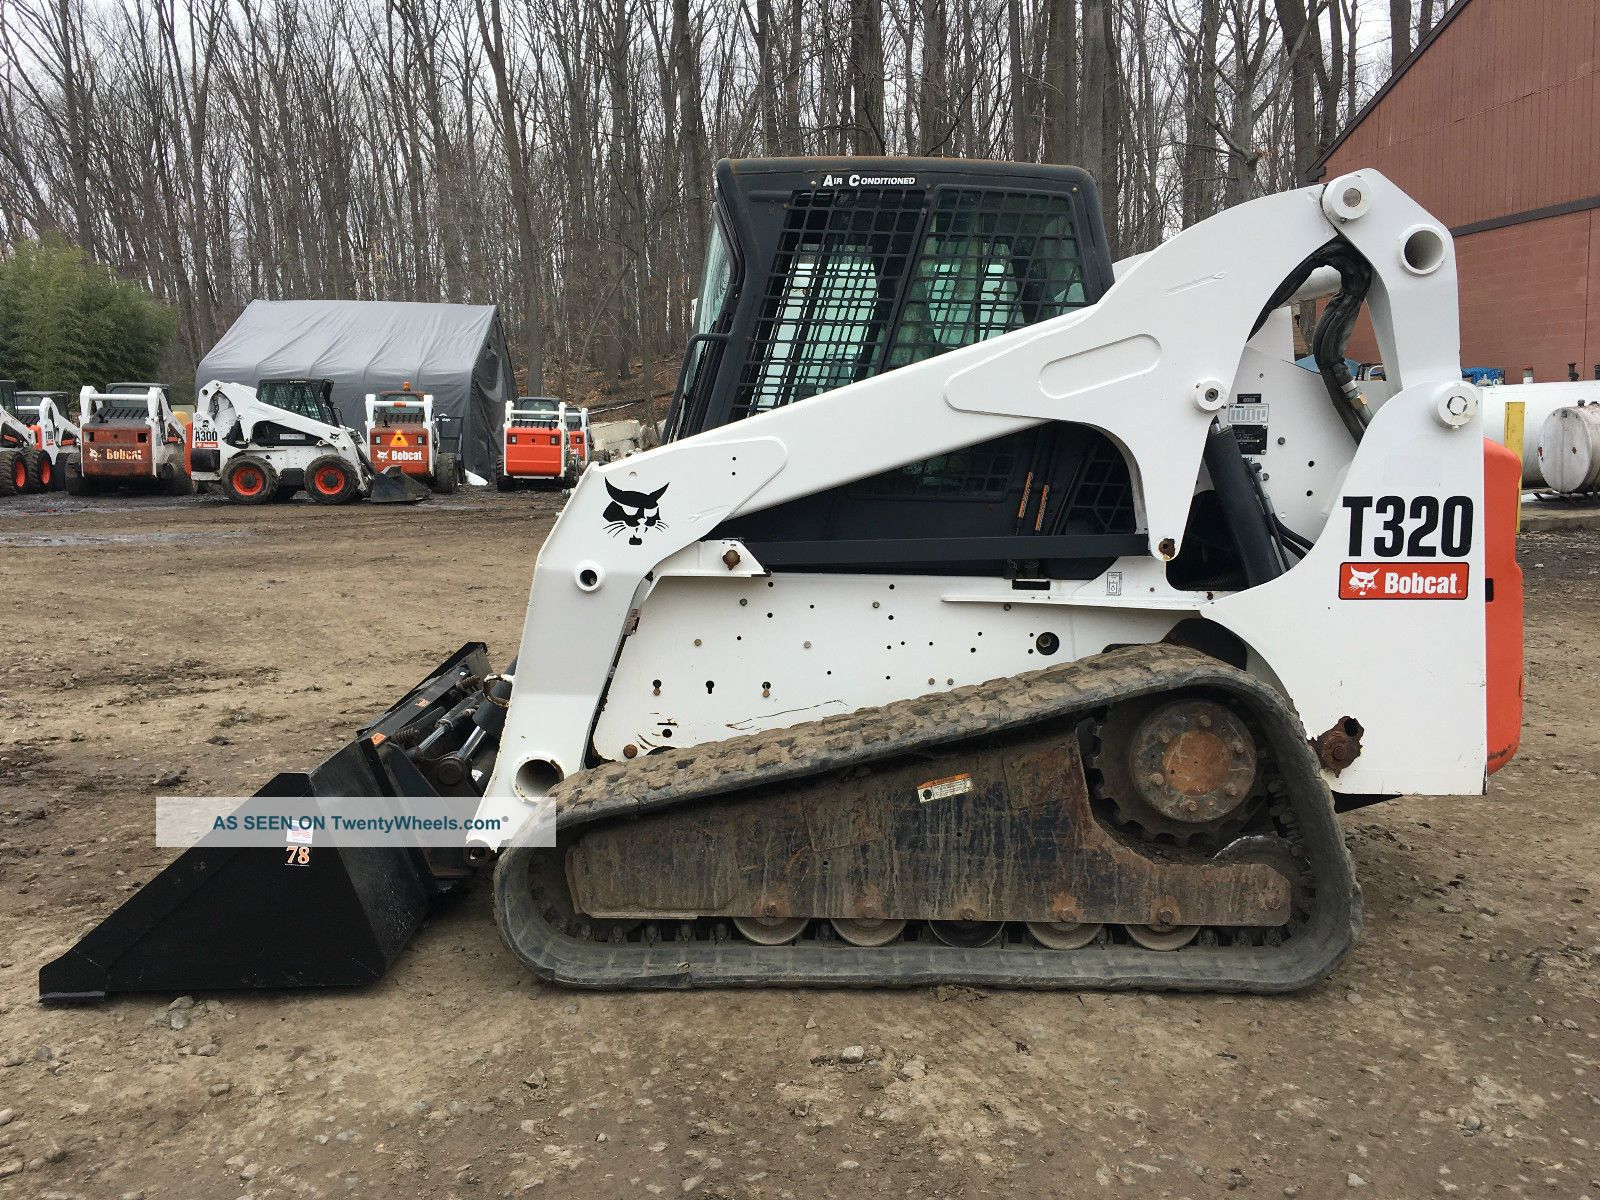 2008 Bobcat T320 Skid Steer Skid Steer Loaders photo